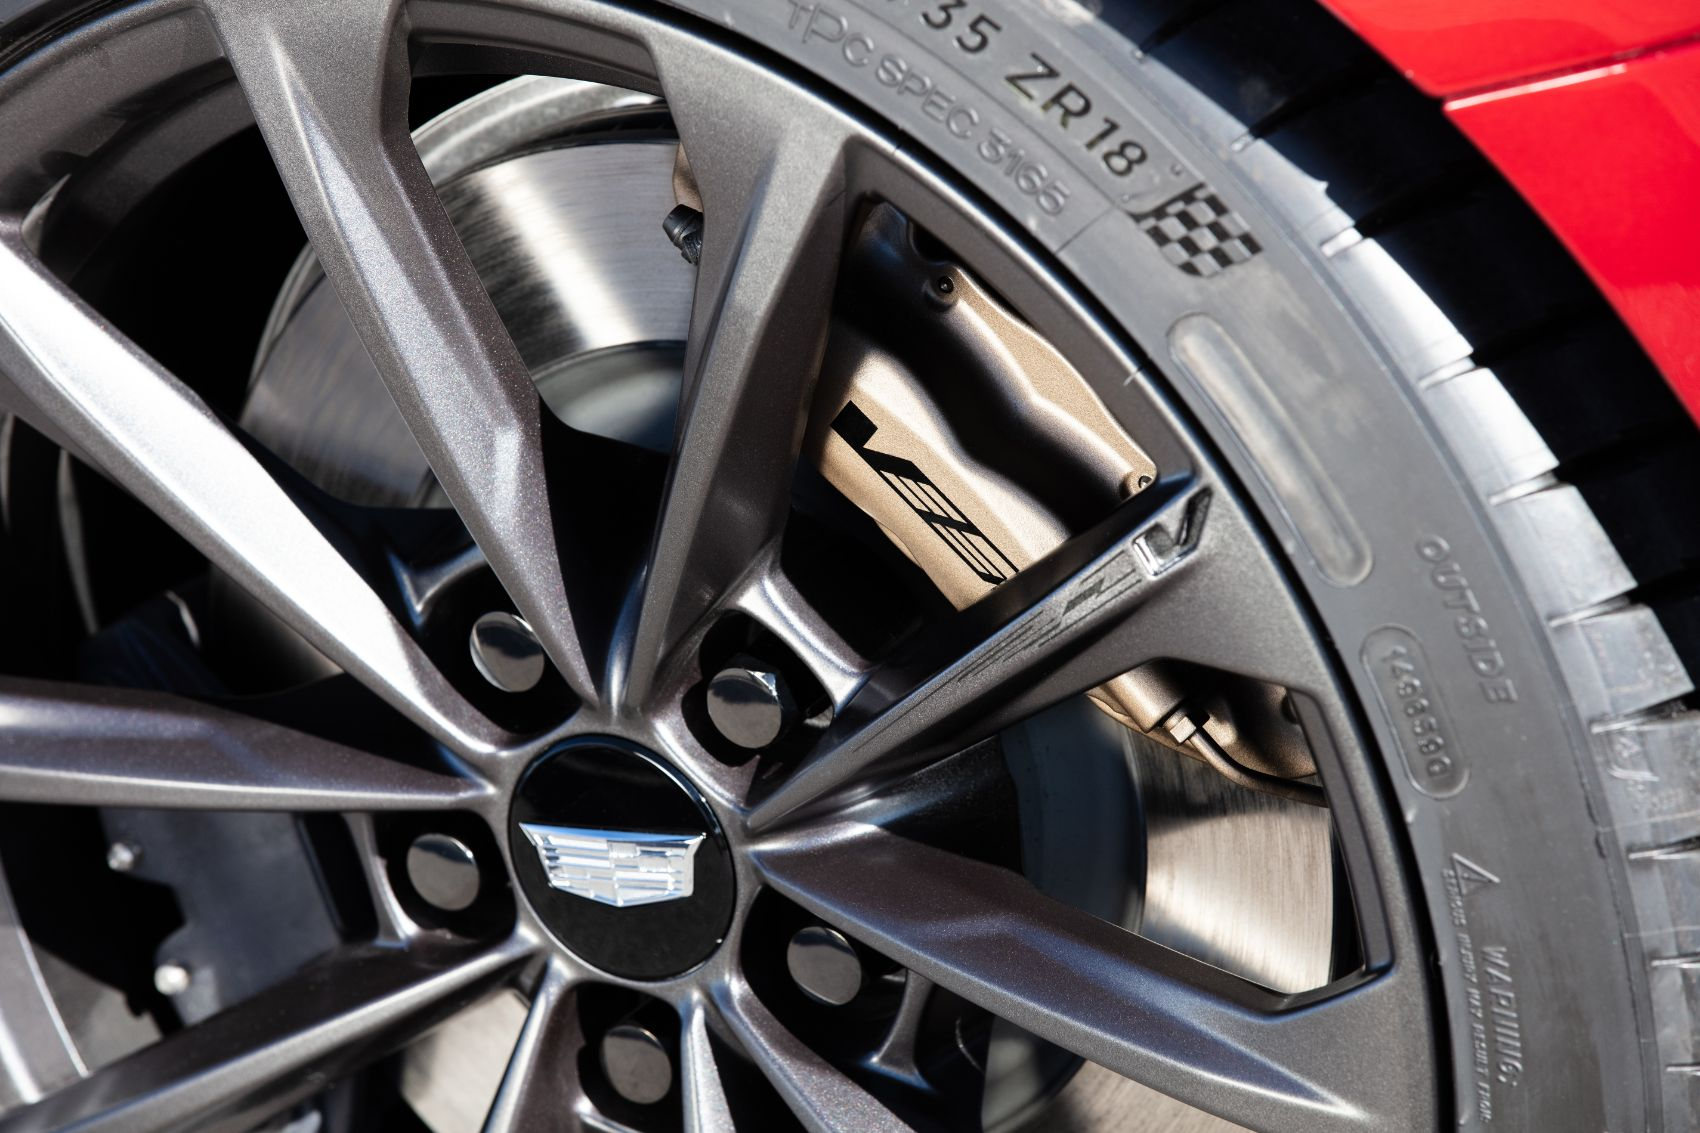 Brembos On Blackwings: Inside Cadillac's First-Ever Carbon-Ceramic Braking System